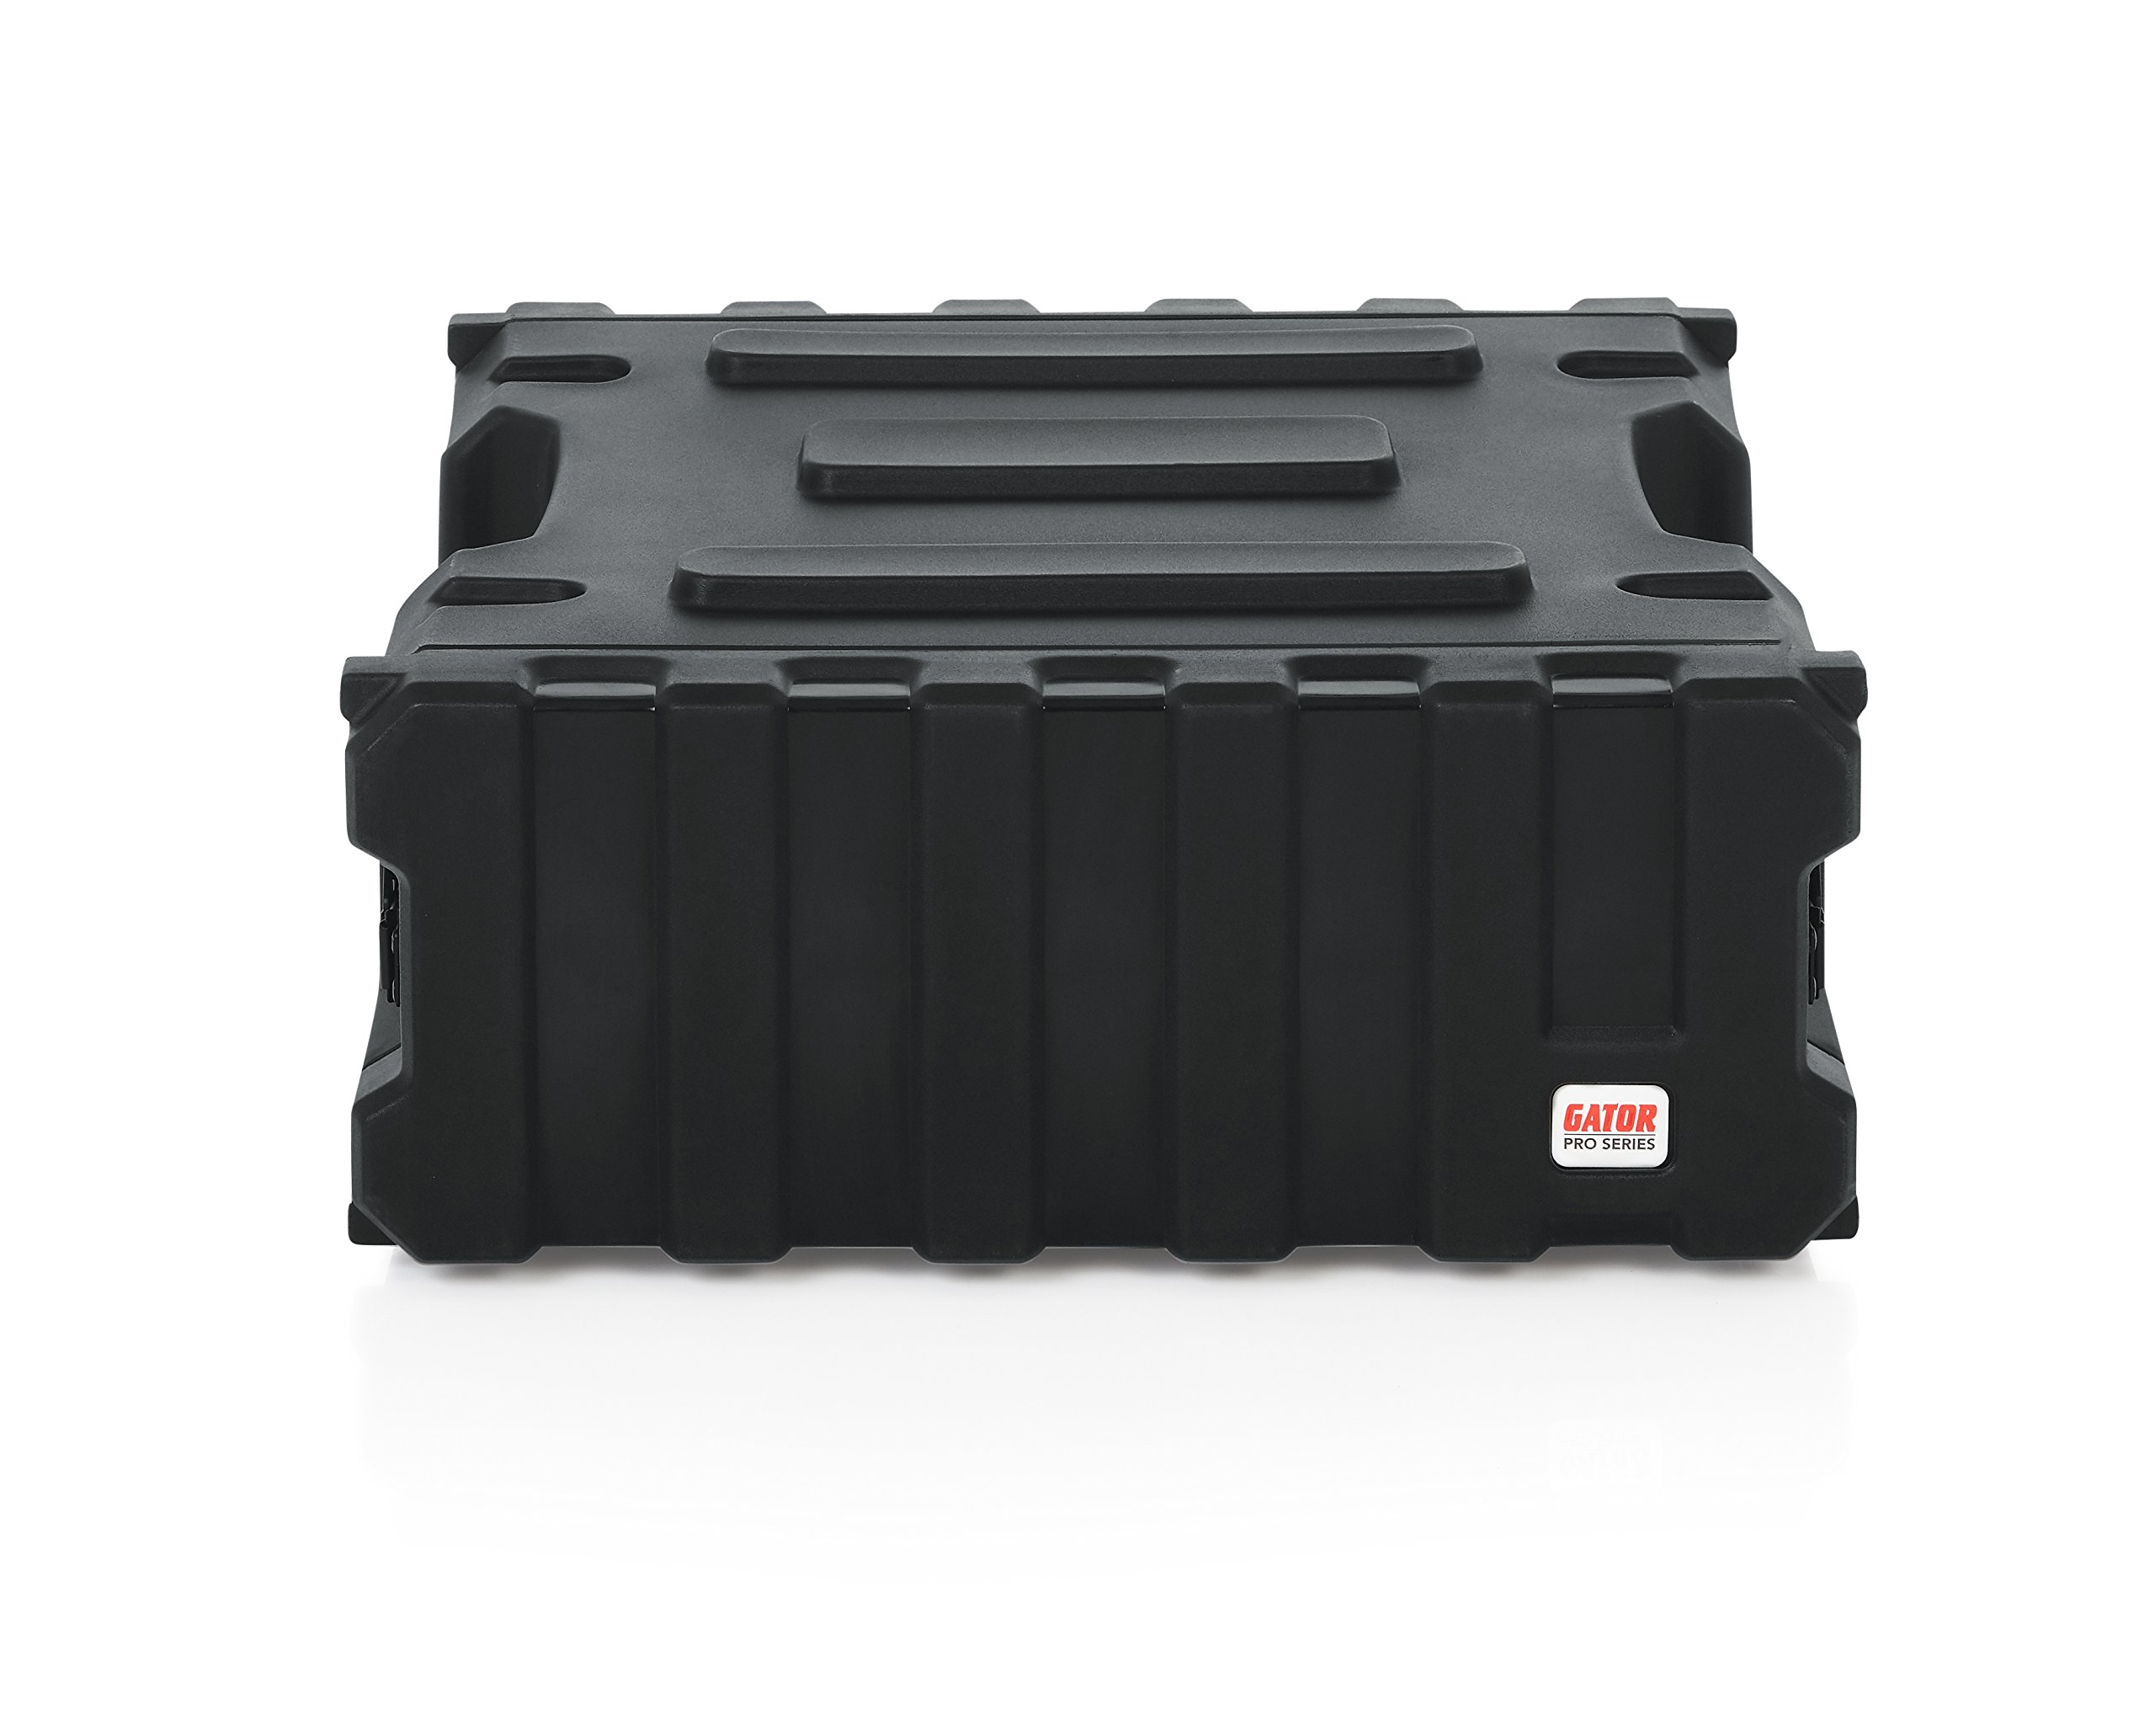 Gator Cases Pro Series Rotationally Molded 4U Rack Case with Standard 19'' Depth; Made in USA (G-PRO-4U-19) by Gator